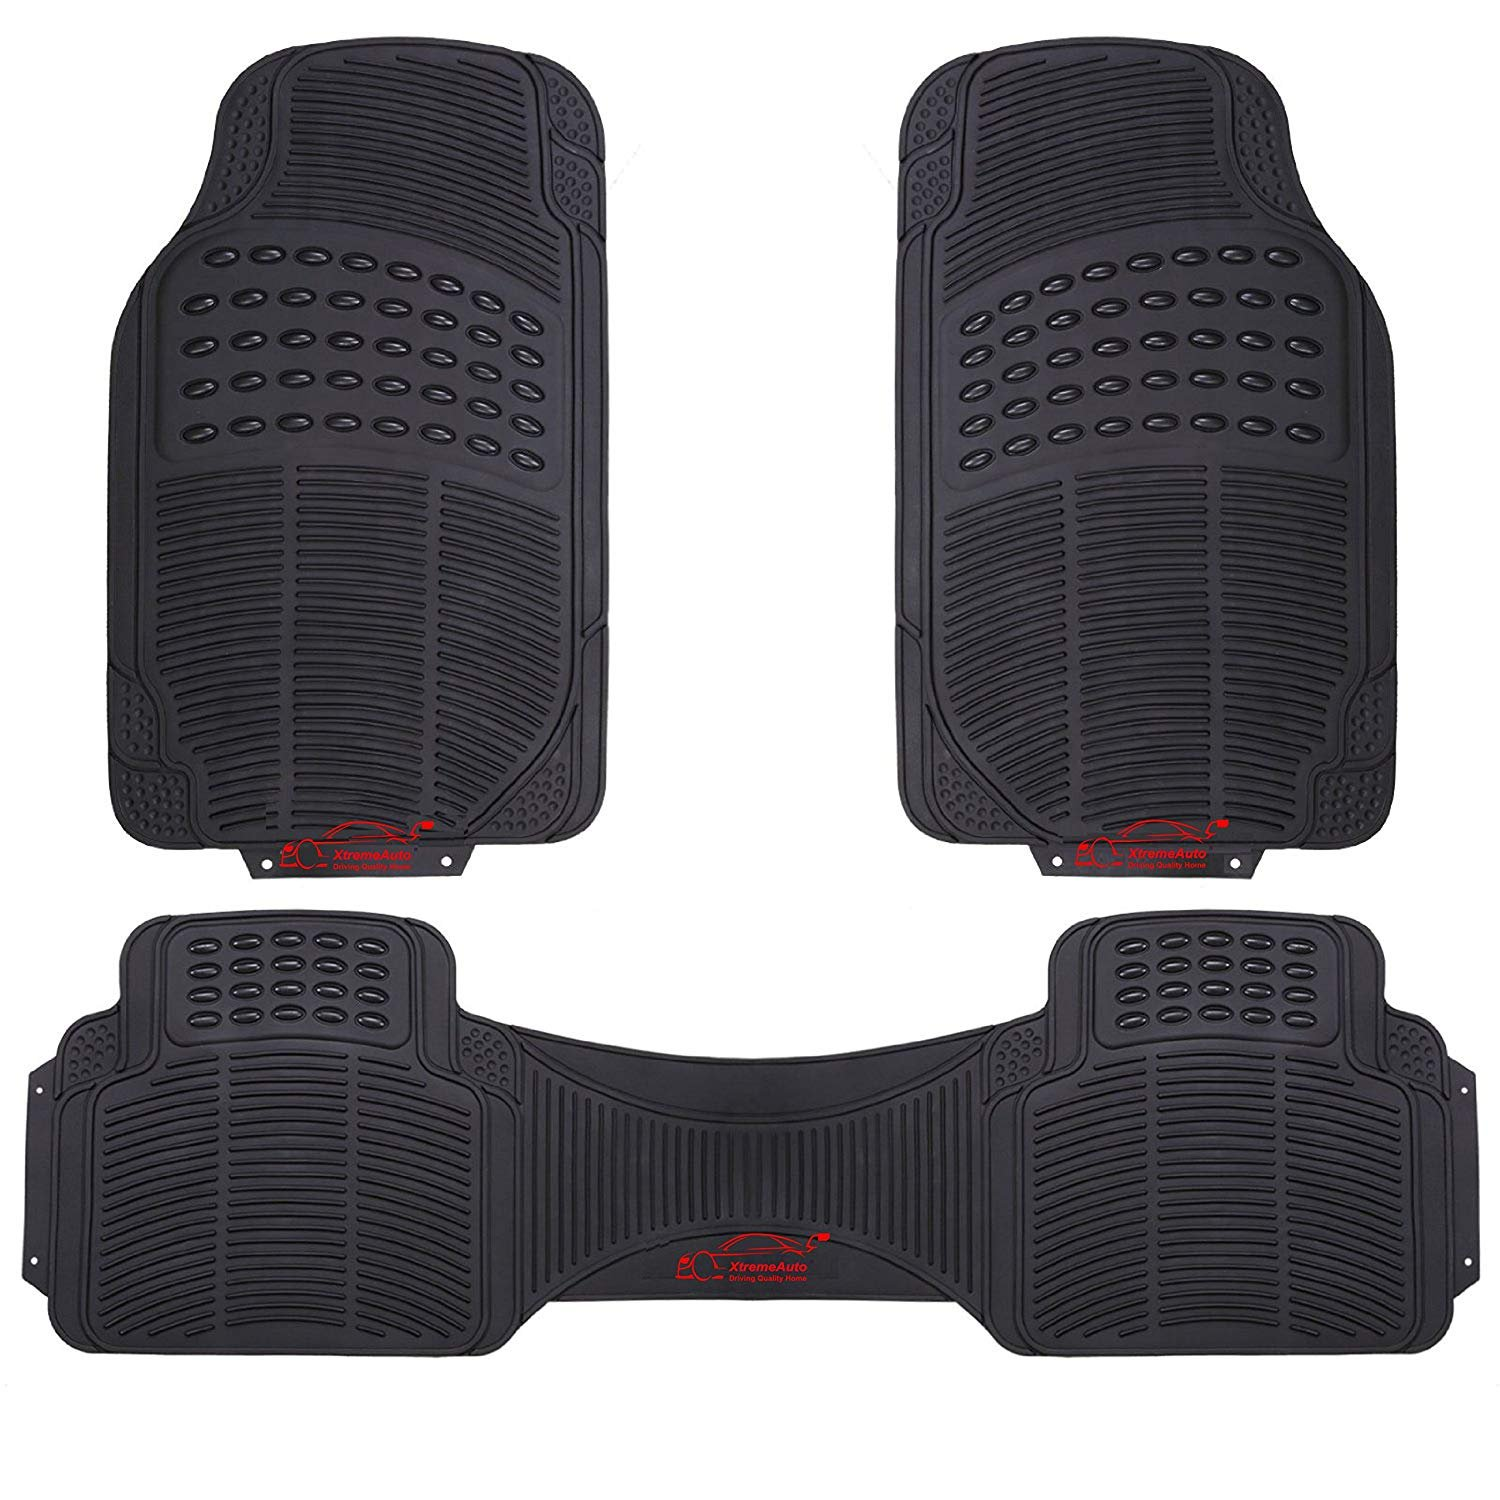 The Best Rubber Car Heavy Duty Universal Waterproof Boot Liner Rear Car Back Seat Protector Mats Fit For Volvo Xc90 2017 2018 Automobiles & Motorcycles